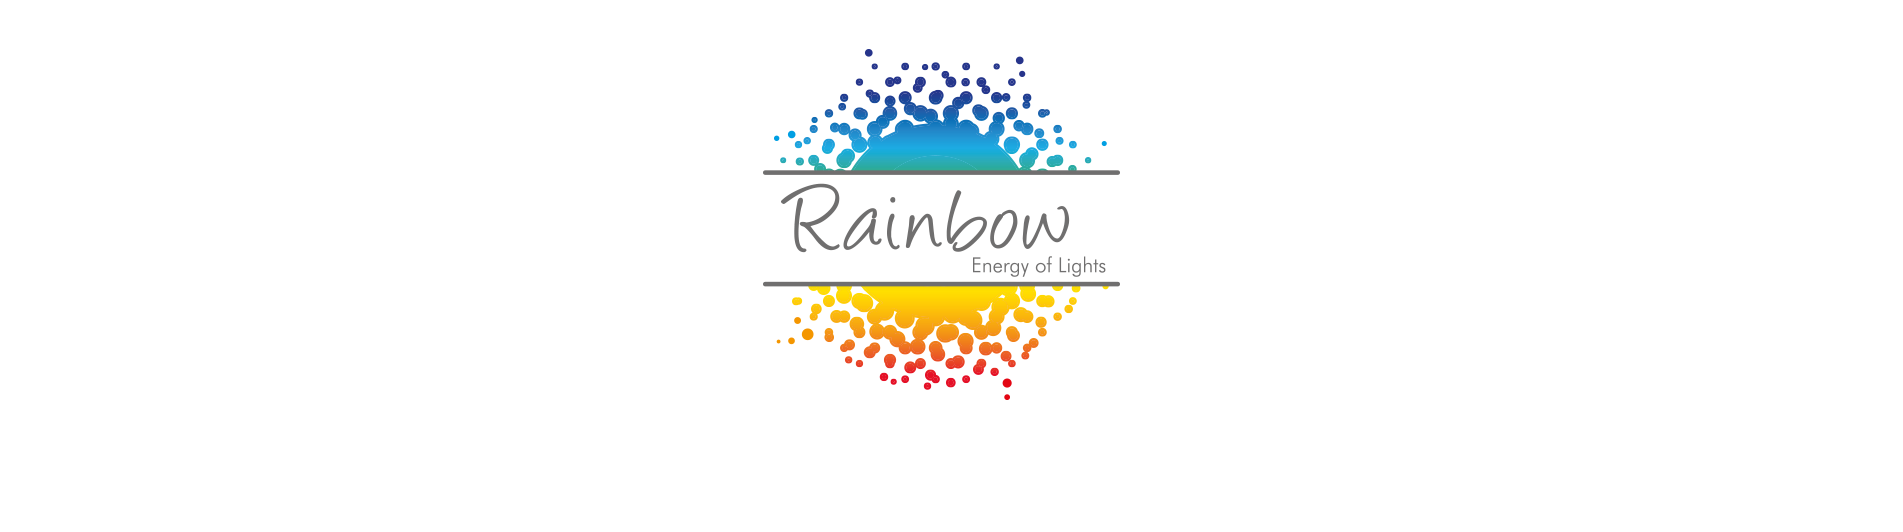 Rainbow - Energy of Lights